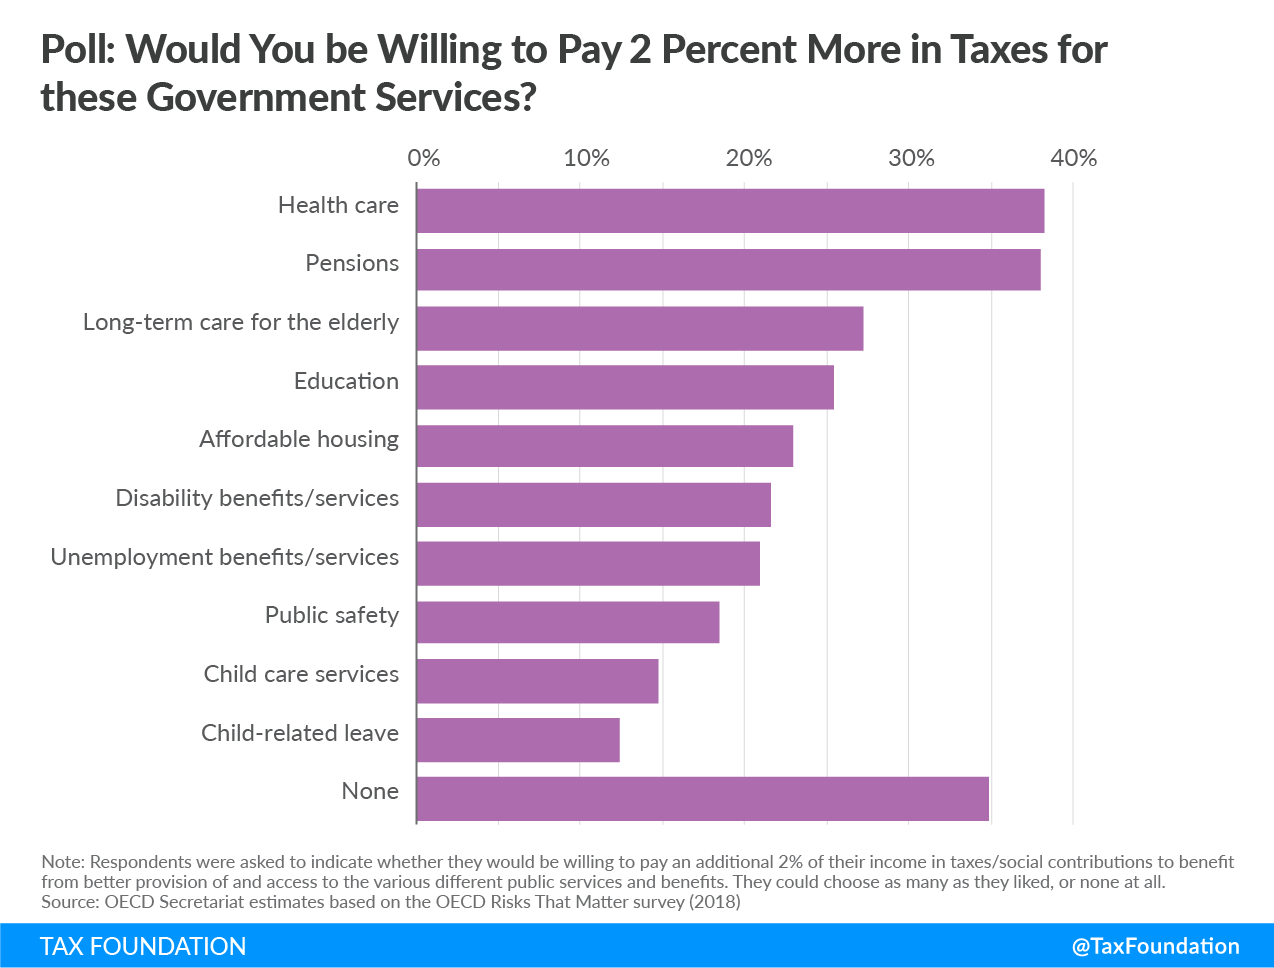 would you be willing to pay 2 percent more in taxes for these government services?